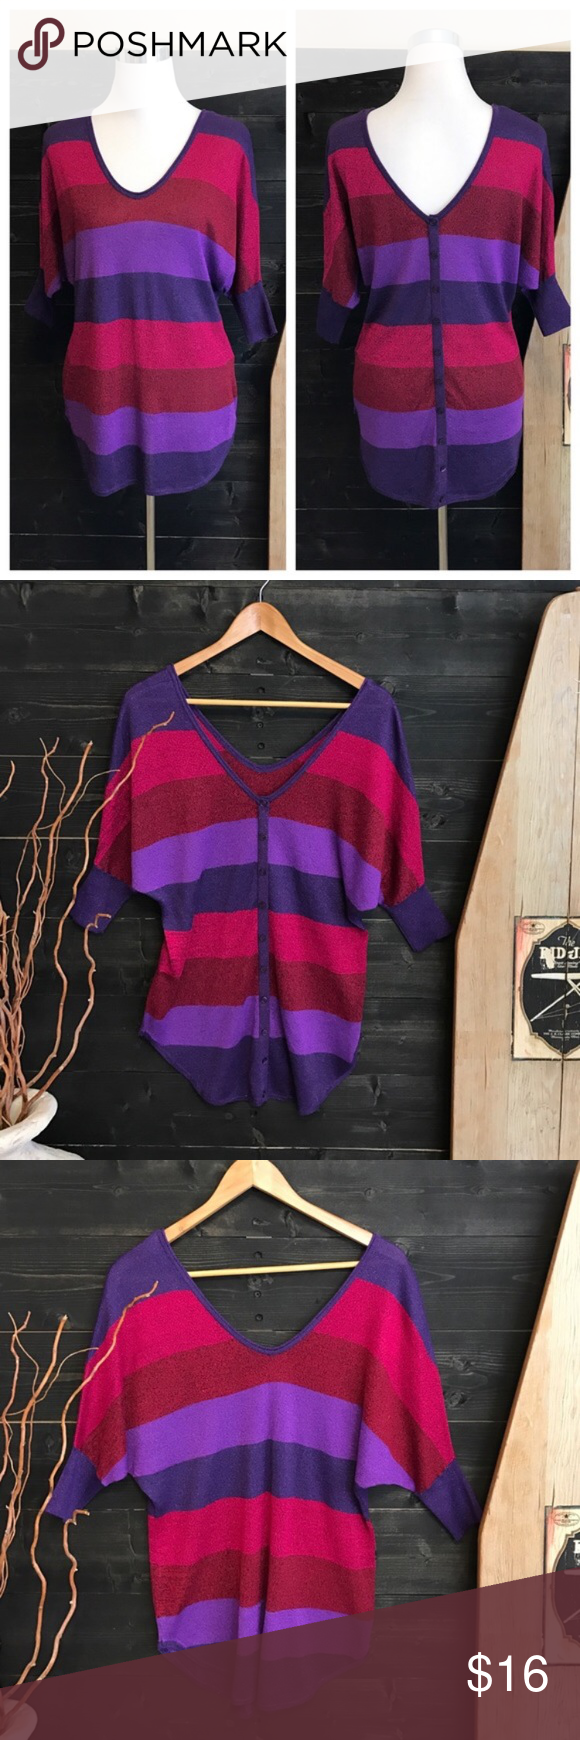 Striped Sweater Striped Sweater Buttons Down the Back - Short Sleeve Batwing Style - Gently Used Condition - Offers Welcomed Express Sweaters